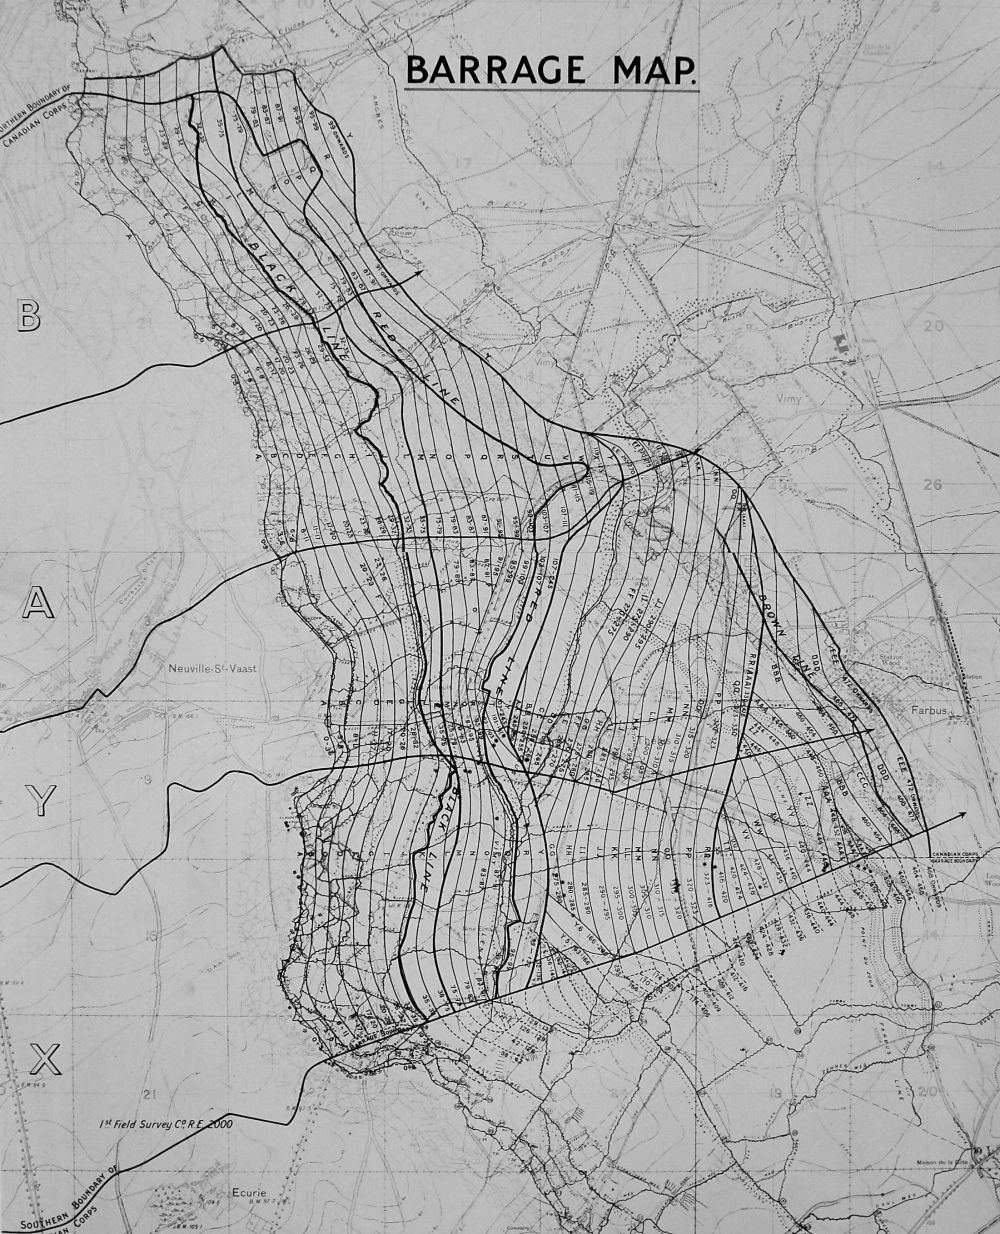 medium resolution of a black and white map showing the area around vimy ridge the map